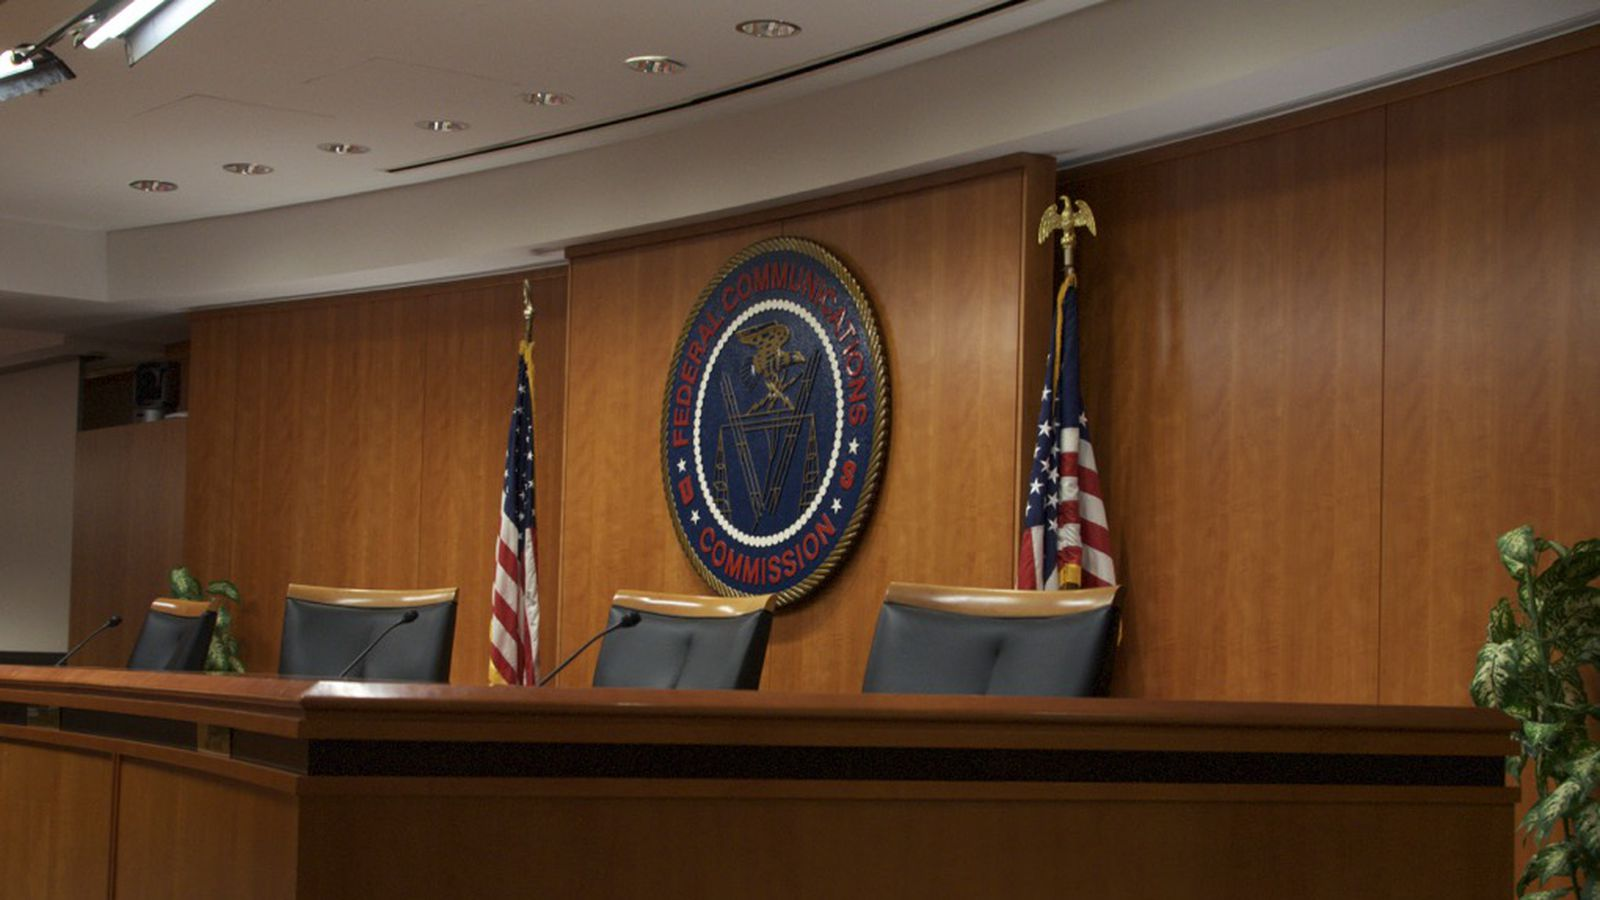 theverge.com - Jacob Kastrenakes - FCC votes to lift net neutrality transparency rules for smaller internet providers